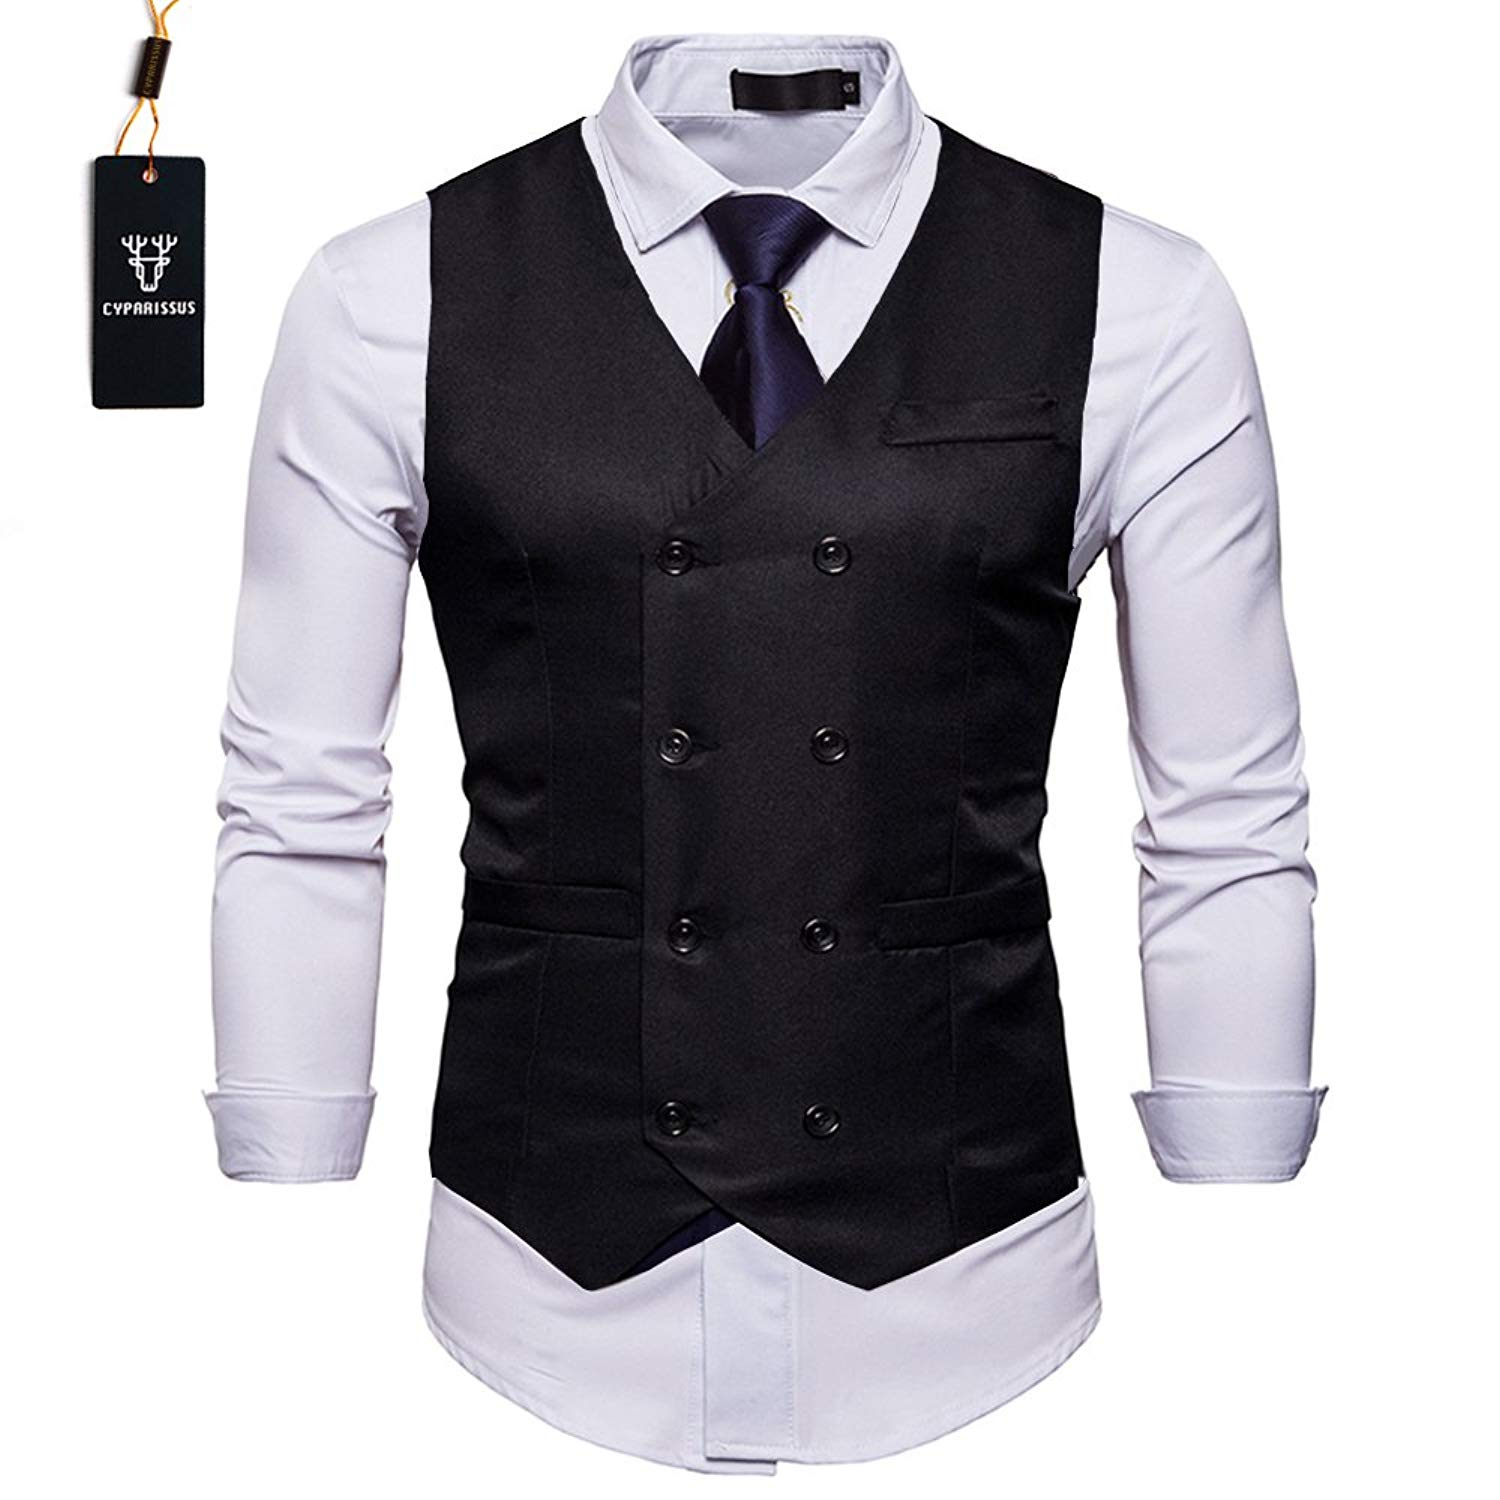 35e137dad8ec16 Get Quotations · Cyparissus Mens Vest Waistcoat Men s Suit Dress Vest for  Men Tuxedo Vest